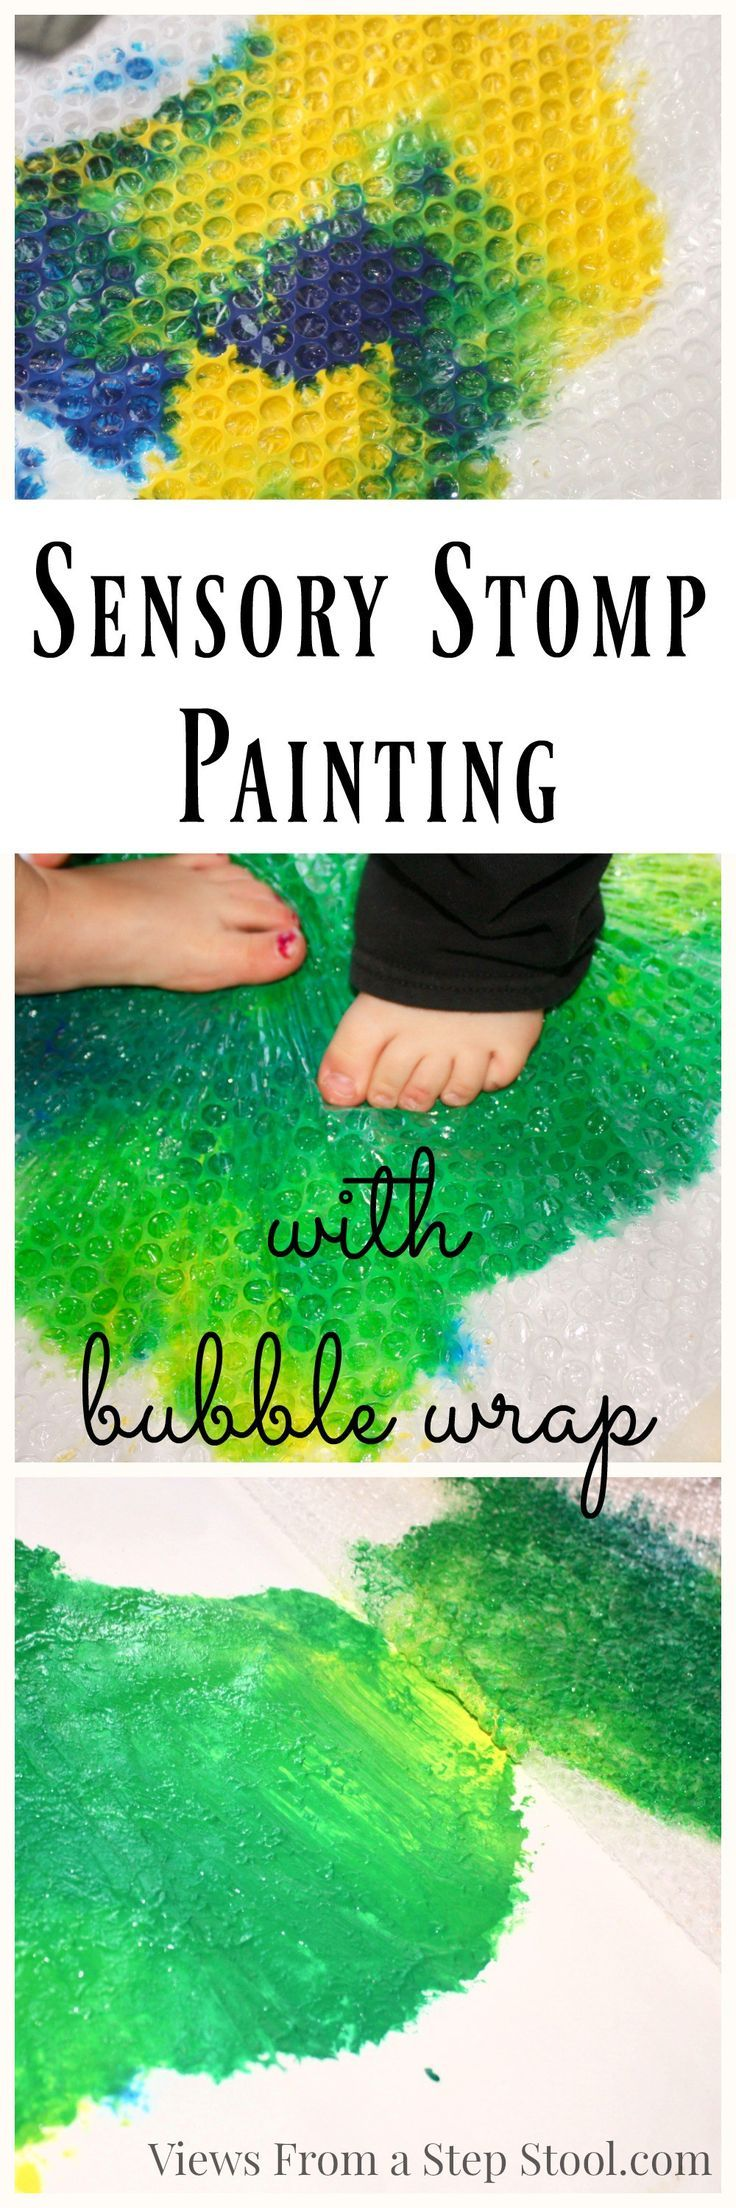 This fun sensory stomp painting process art is a great way to engage all of the senses in play. A wonderful way to make painting with kids mess-free!